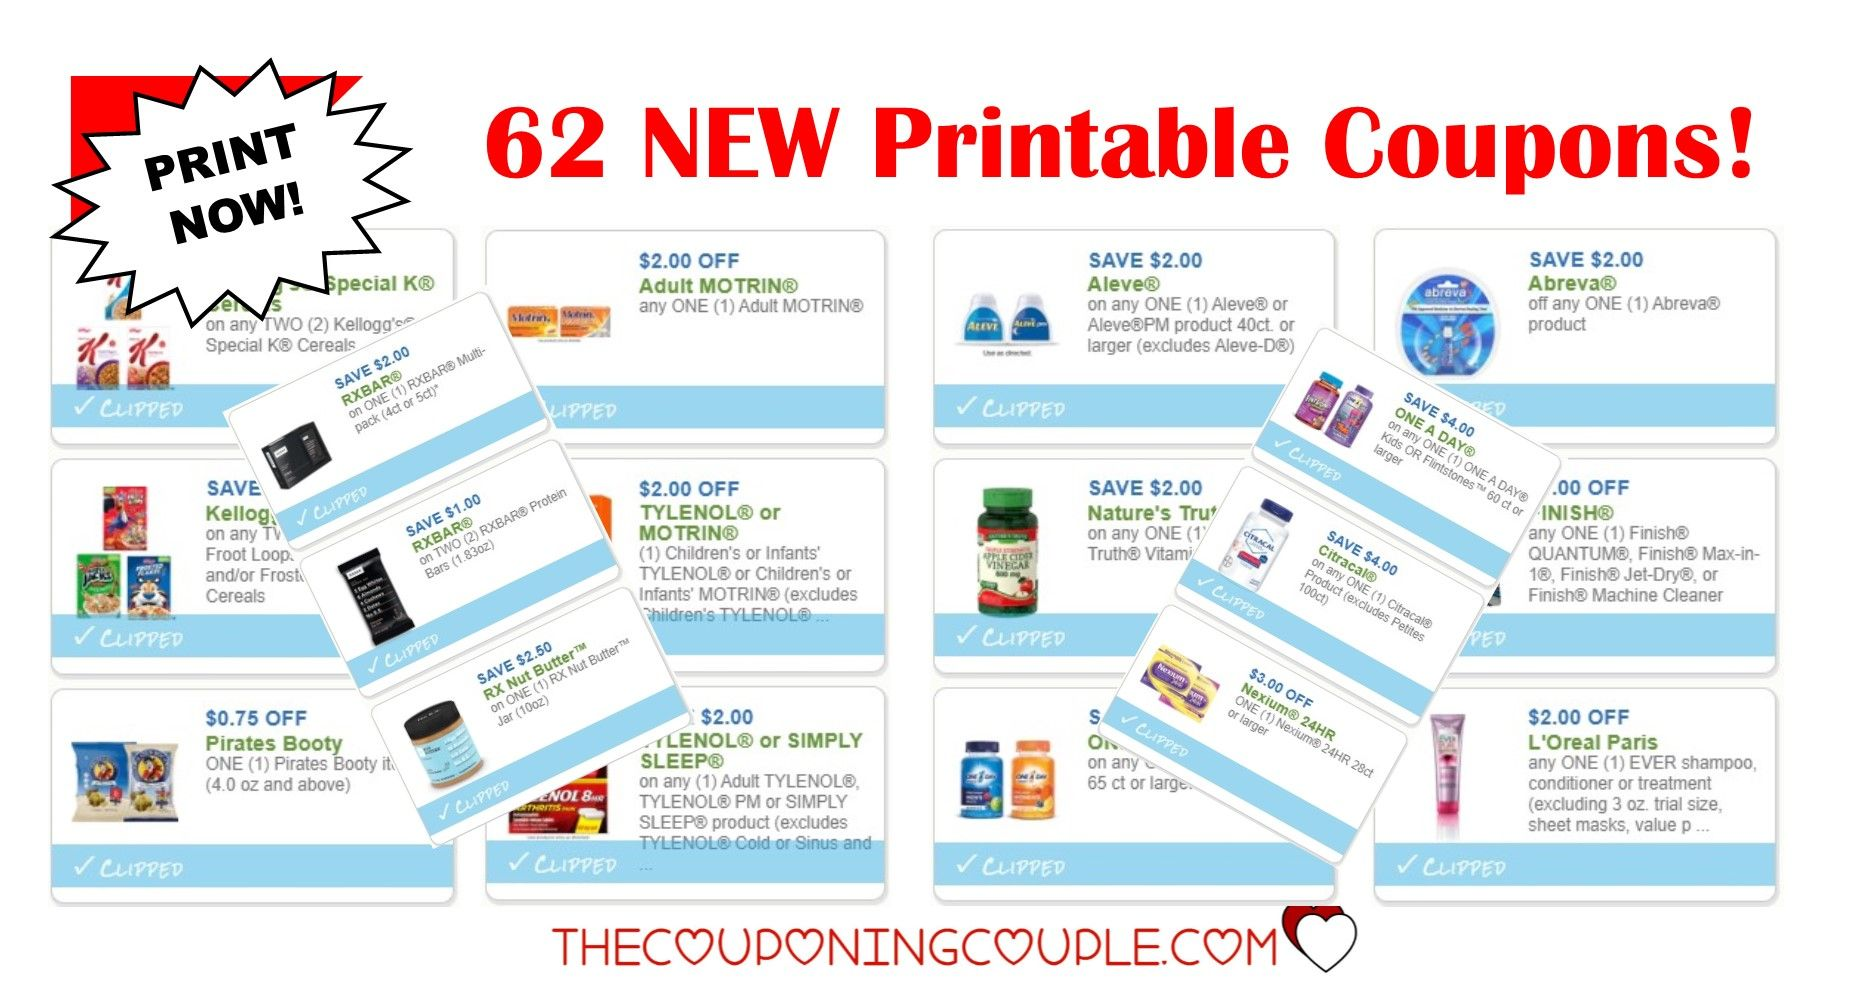 62 New Printable Coupons Over 143 In Savings Wow Printable Coupons Coupons Aleve